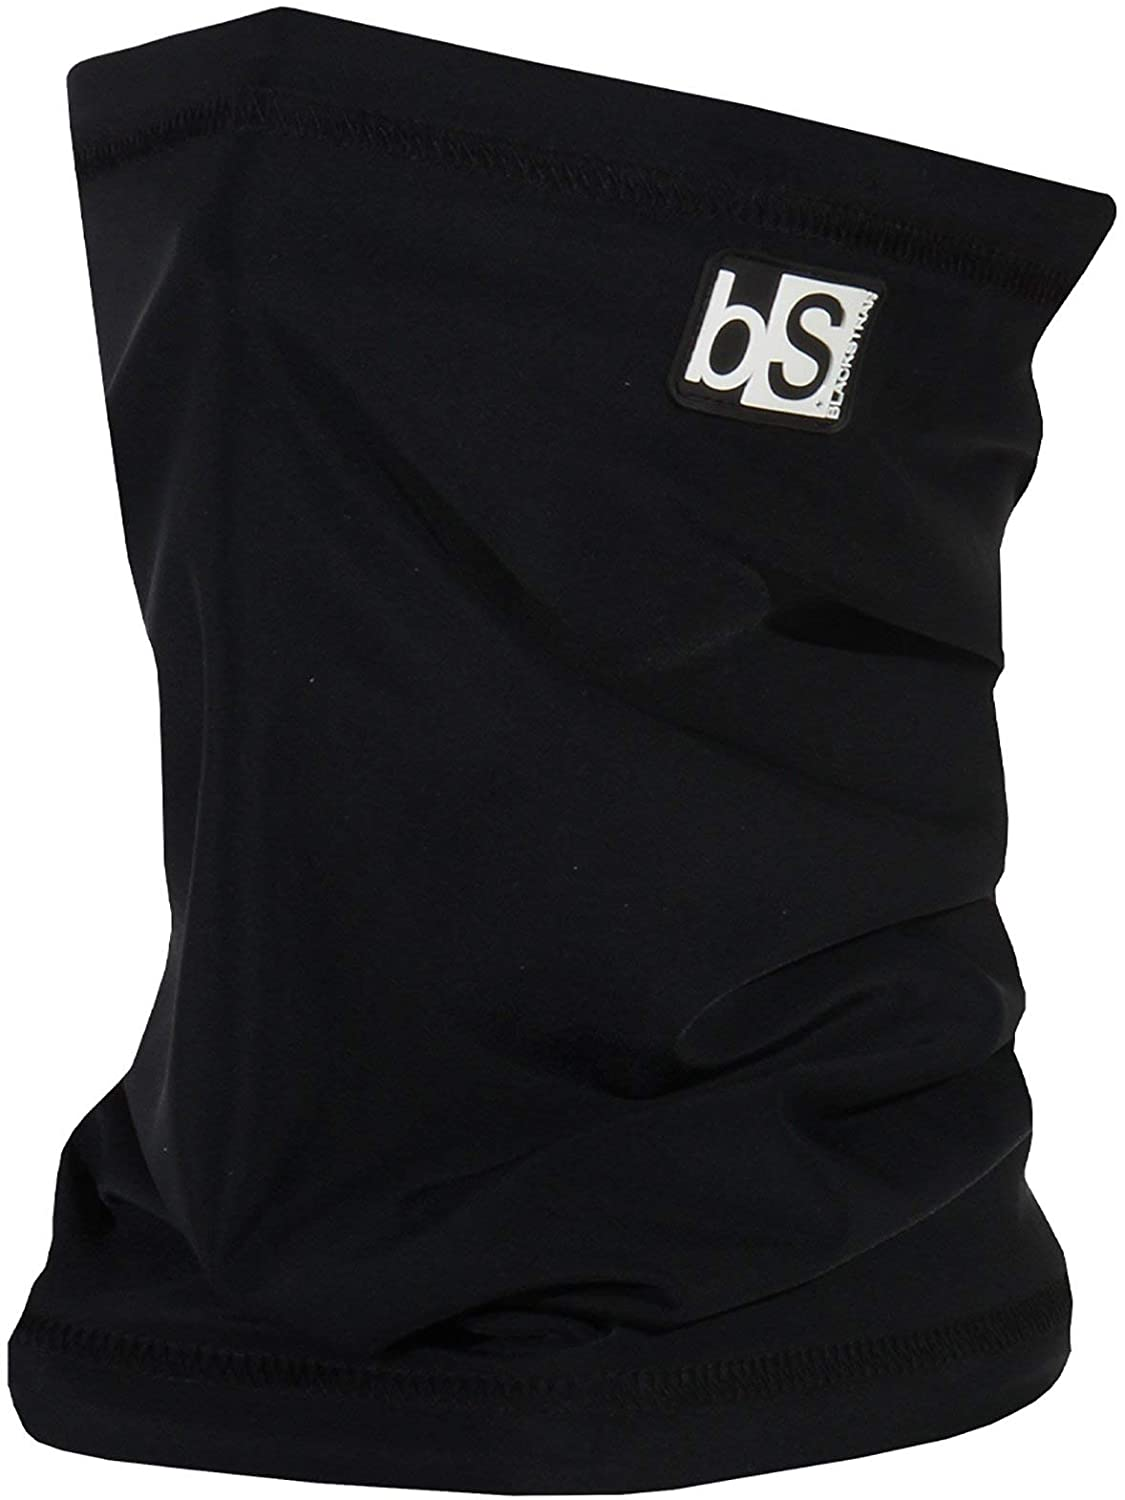 BlackStrap The Tube, Dual Layer Cold Weather Neck Gaiter and Warmer for Men and Women